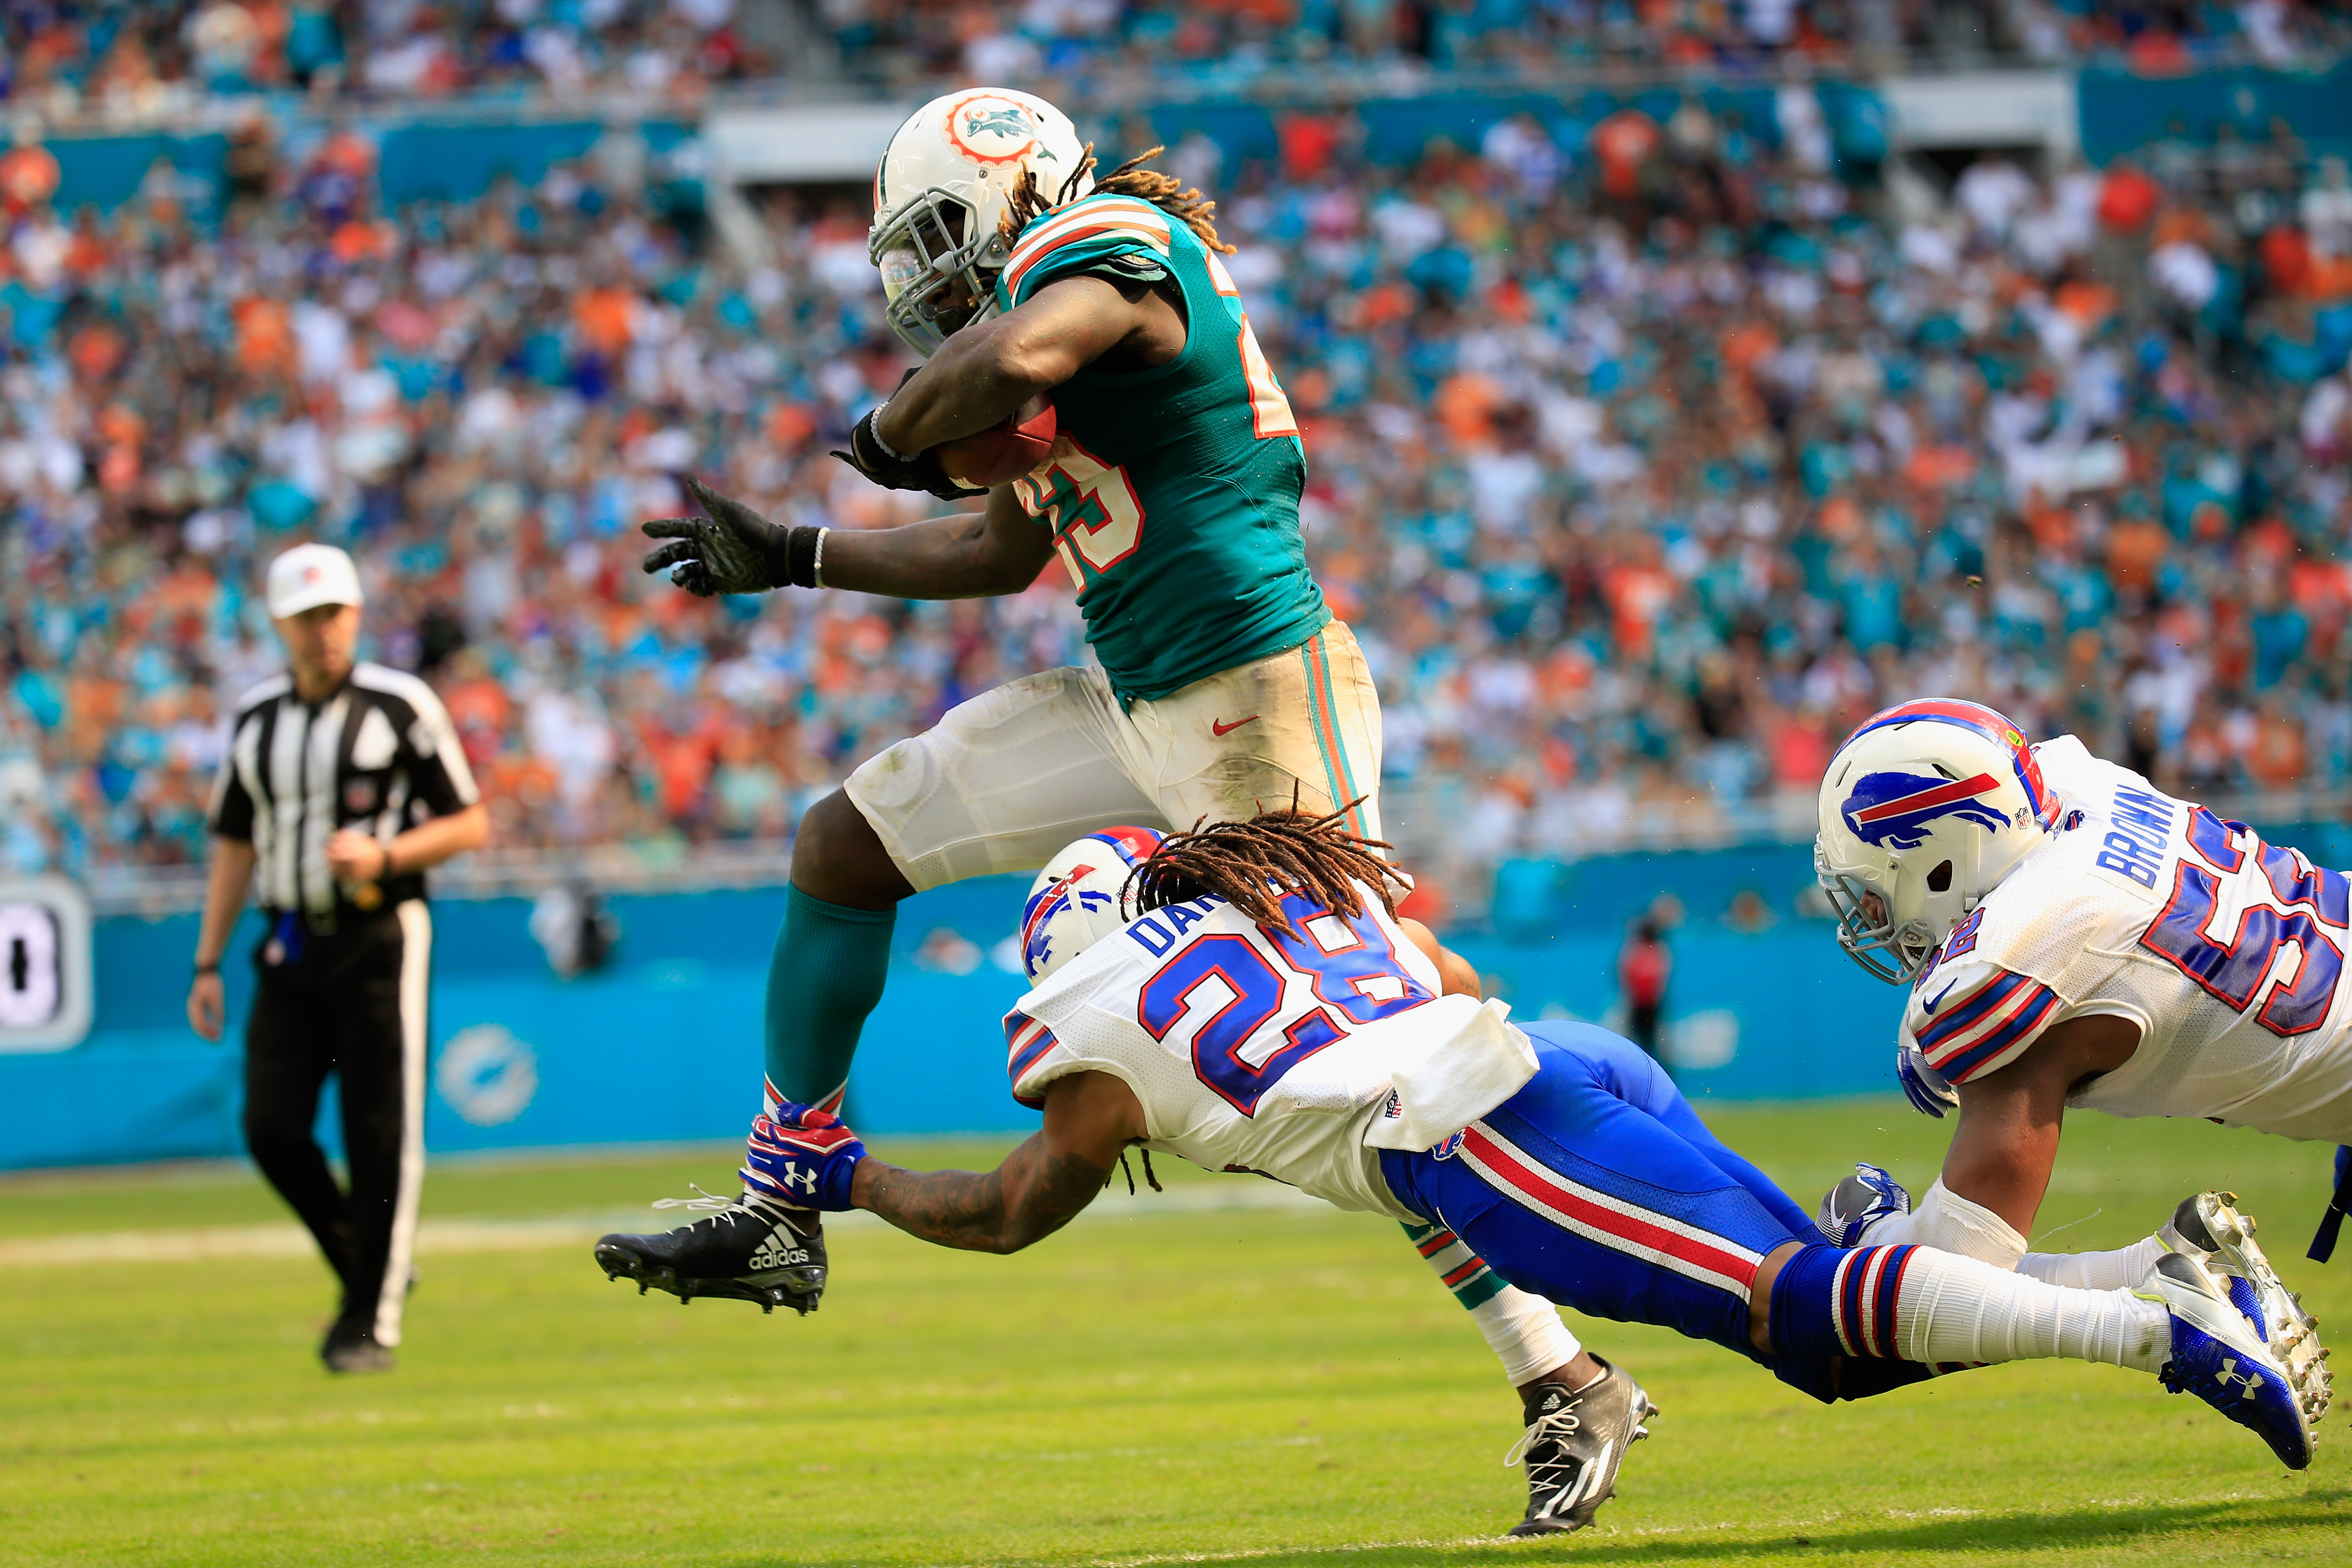 Jay Ajayi of the Miami Dolphins against the Buffalo Bills at the Hard Rock Stadium on Oct. 23, 2016 in Miami Gardens, Florida. (credit: Chris Trotman/Getty Images)